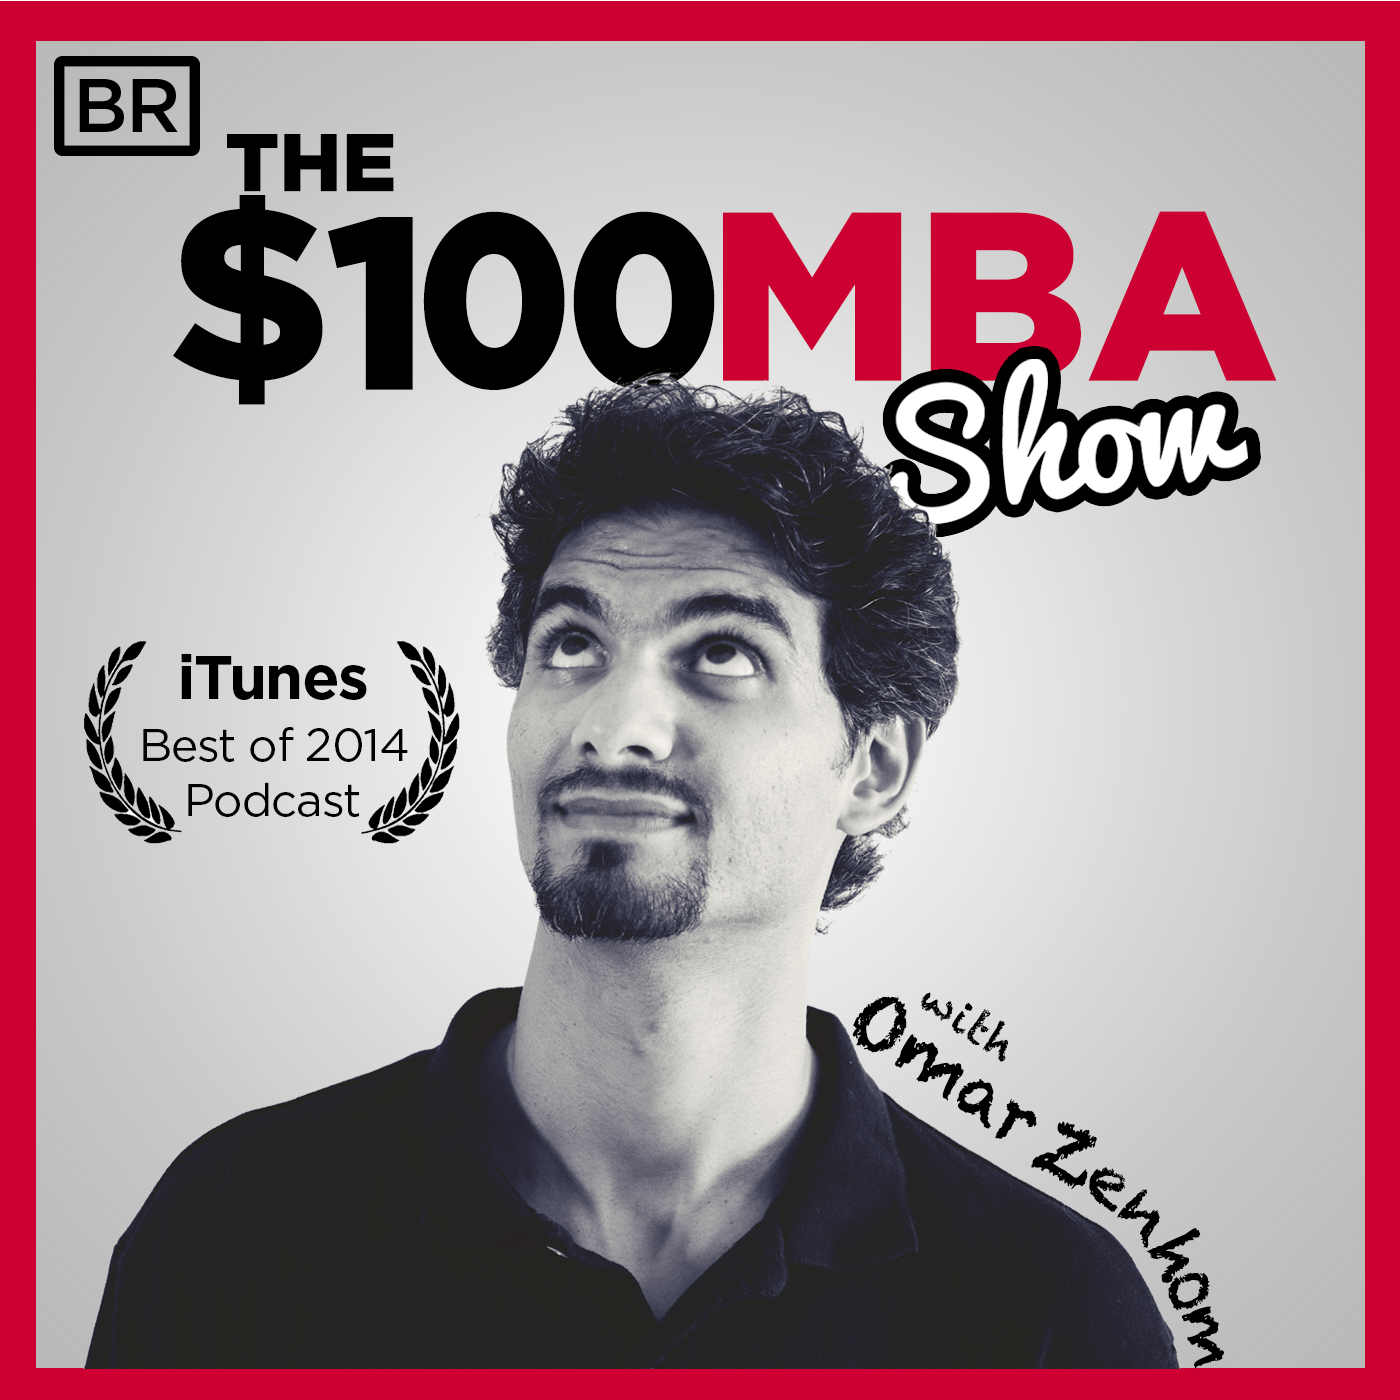 the $100 MBA Show Podcast